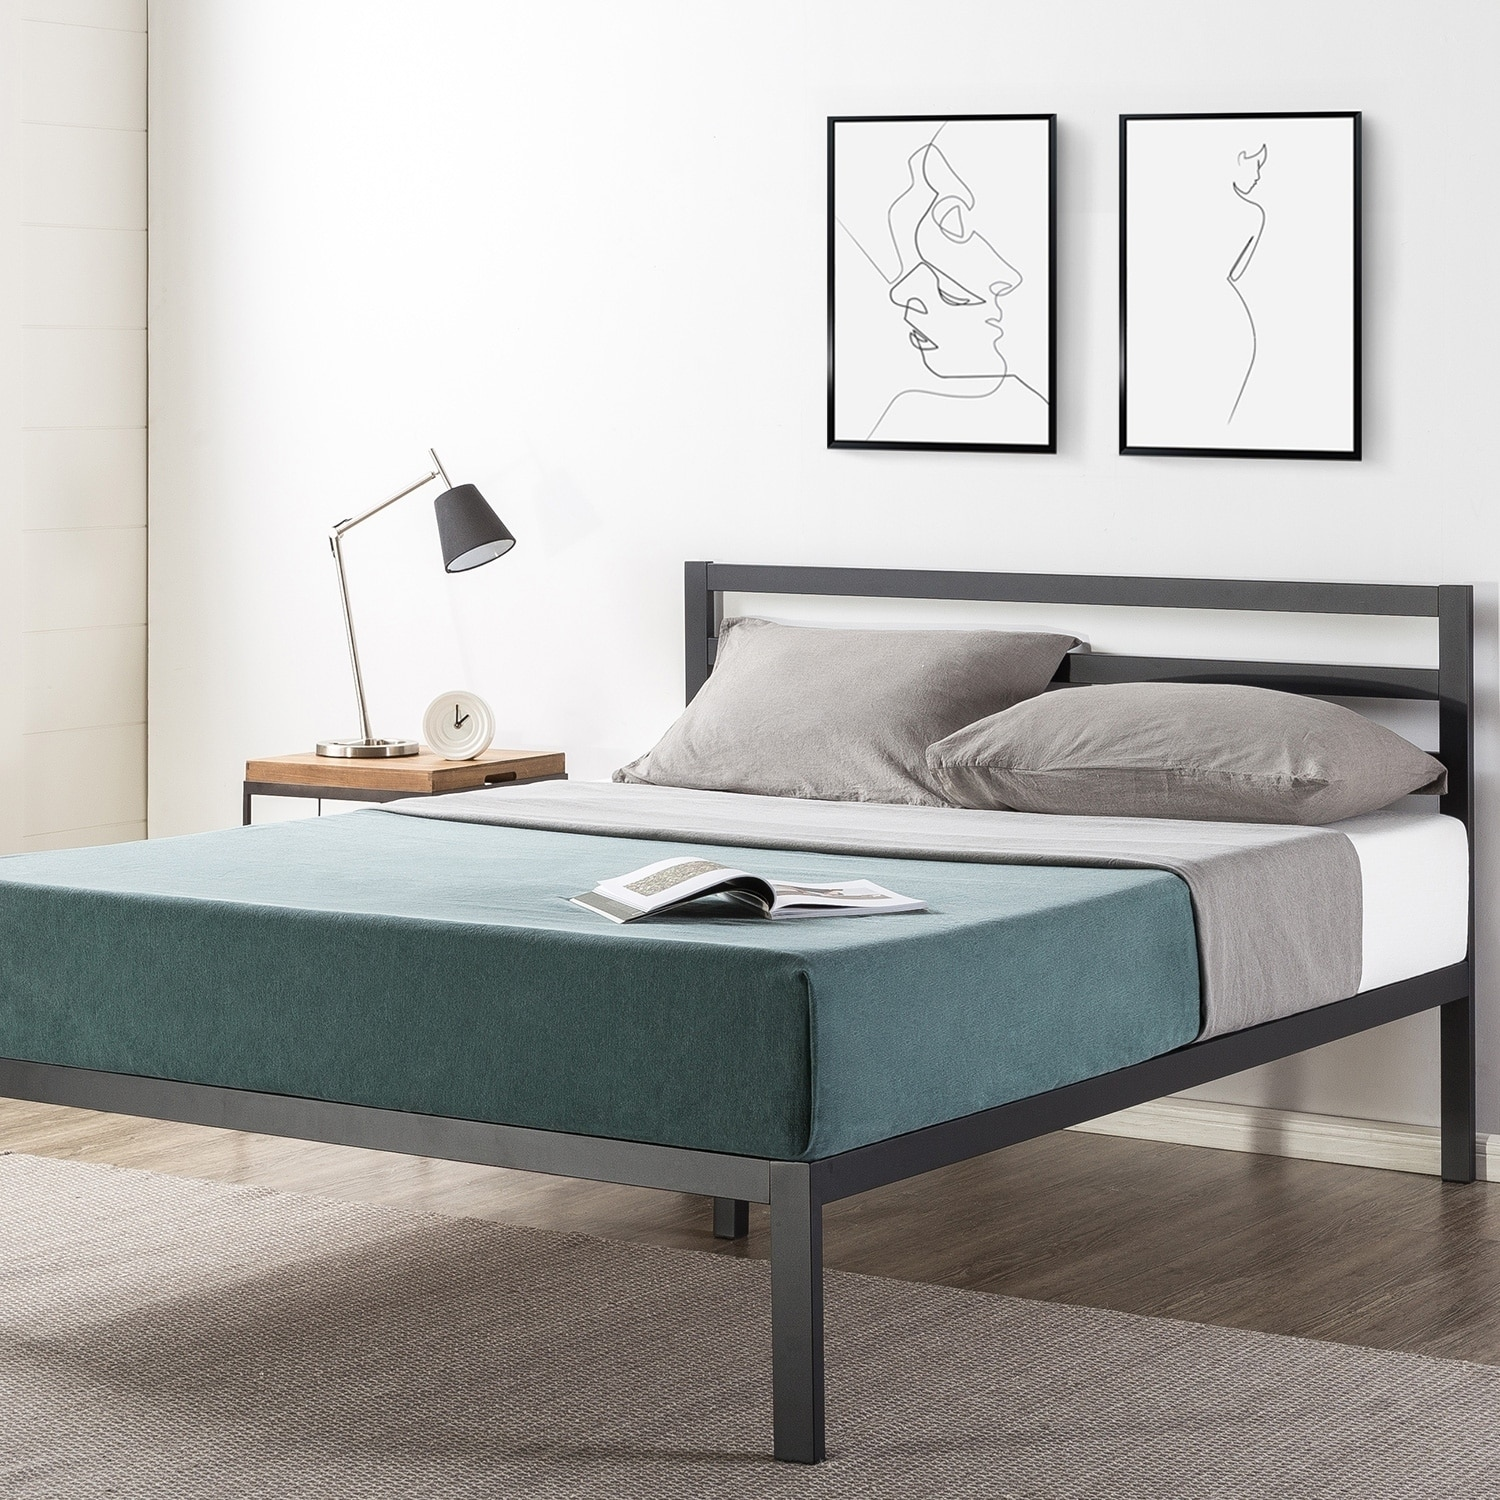 14 Inch Metal Platform Bed With Headboard Wooden Slat Support Mattress Foundation No Box Spring Needed Crown Comfort On Sale Overstock 27280045